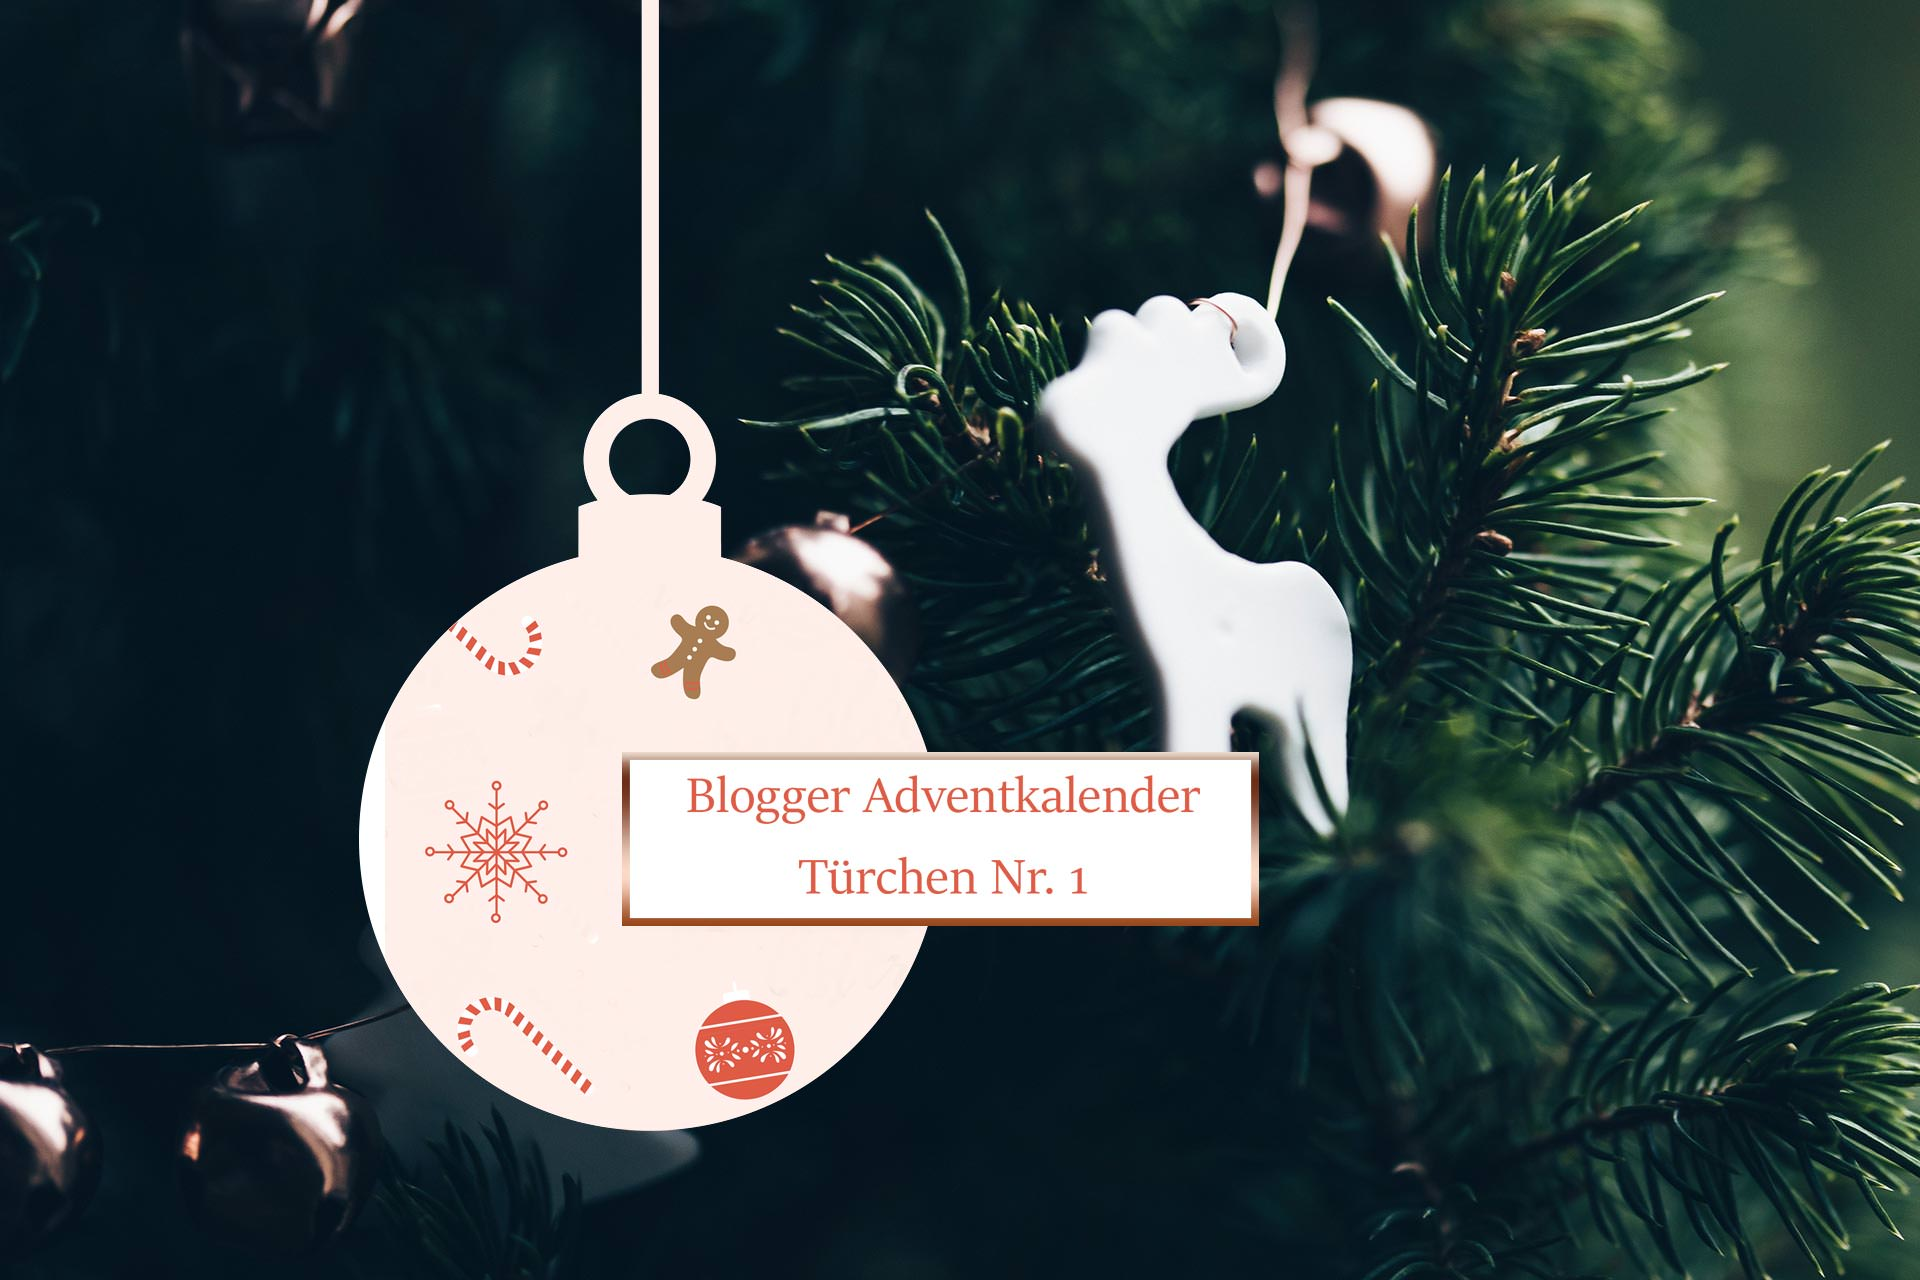 Blogger Adventskalender Österreich 2017, Gewinnspiele, Blogger Adventskalender, Giveaways, Fashion Blog, Modeblog, Style Blog, www.whoismocca.com